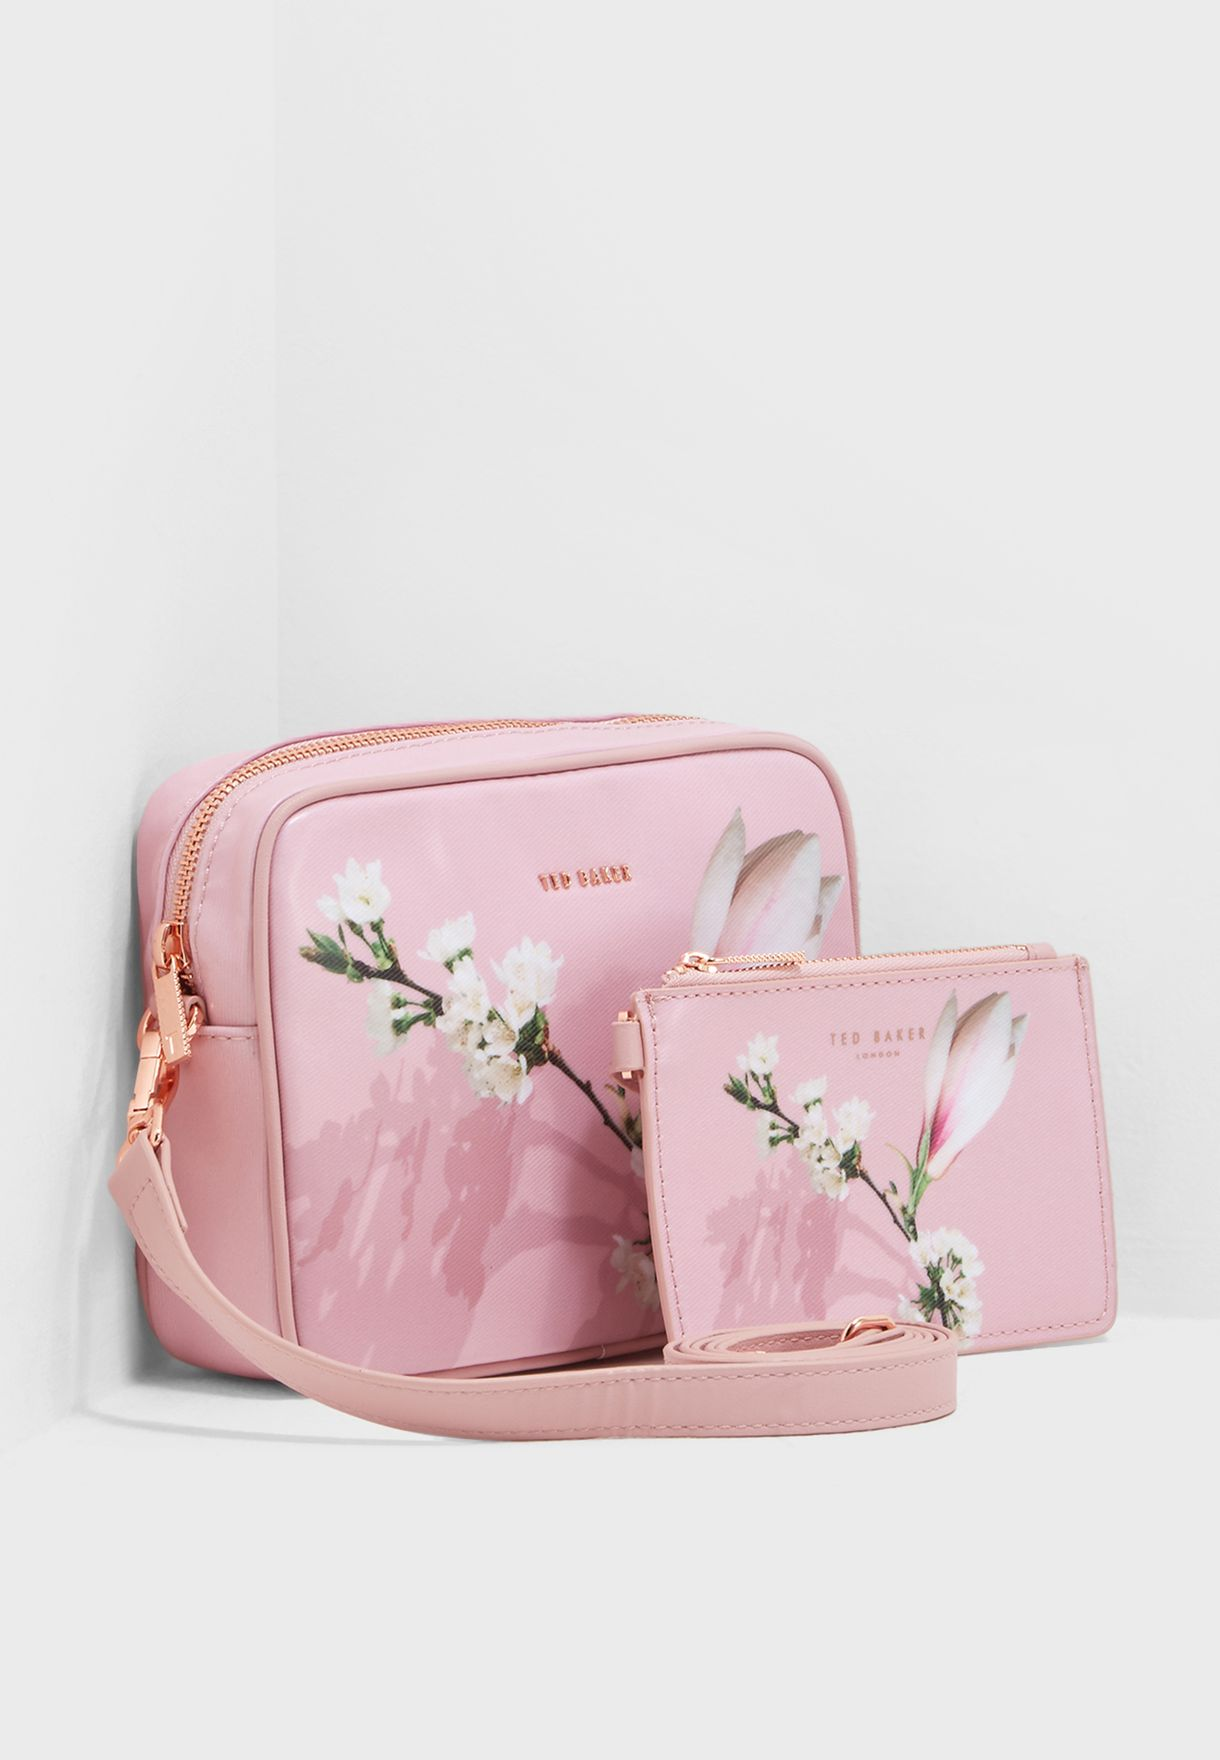 6a8773654 Shop Ted baker prints Harmony Coated Crossbody 147029 for Women in ...